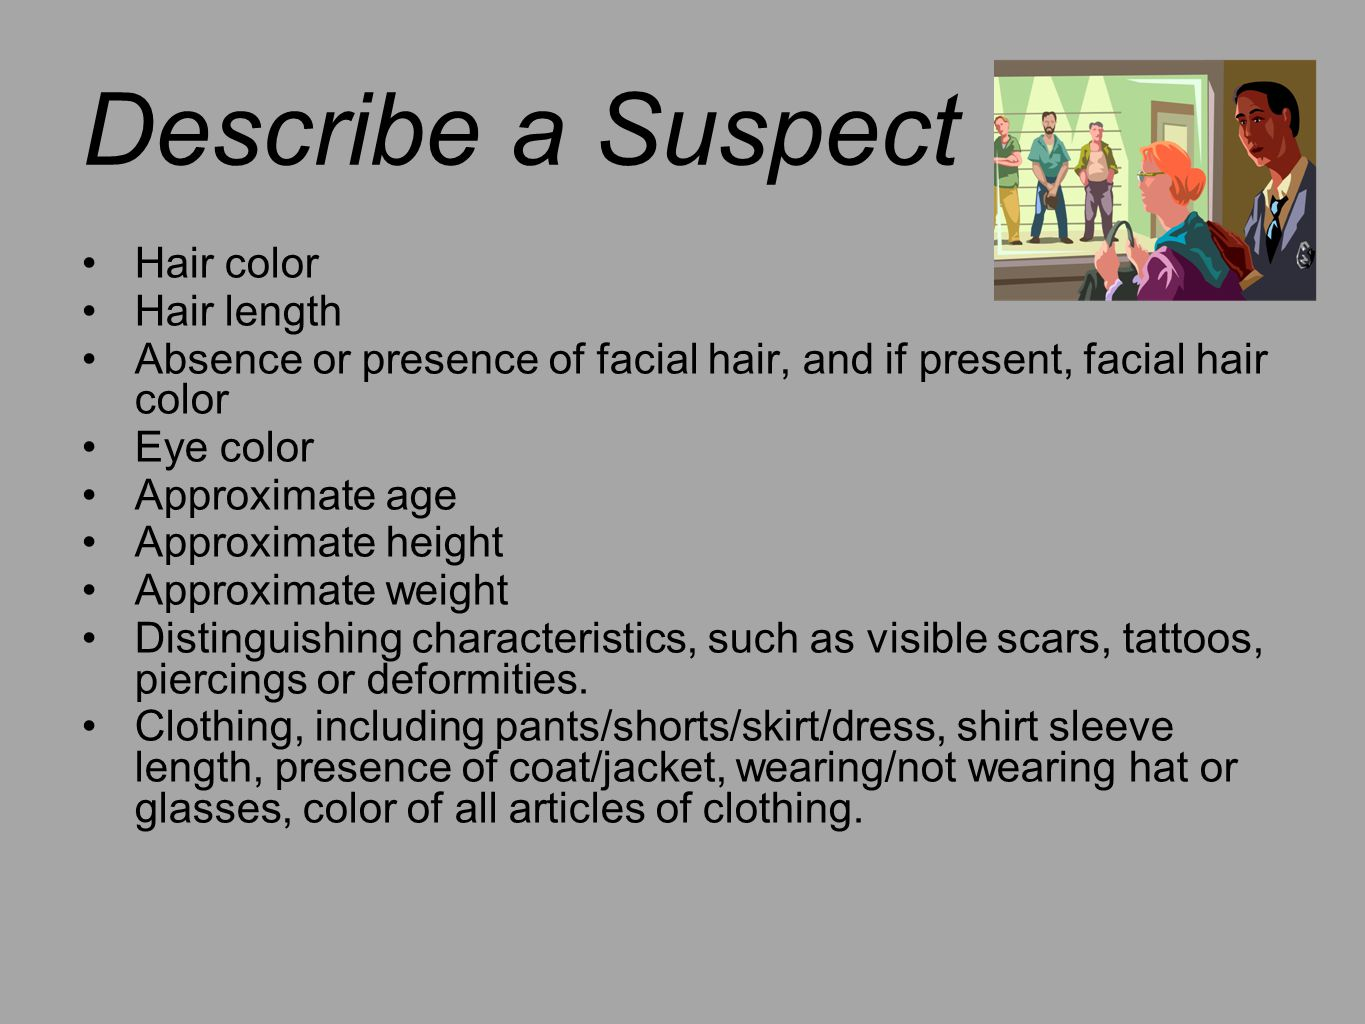 Describe a Suspect Hair color Hair length Absence or presence of facial hair, and if present, facial hair color Eye color Approximate age Approximate height Approximate weight Distinguishing characteristics, such as visible scars, tattoos, piercings or deformities.